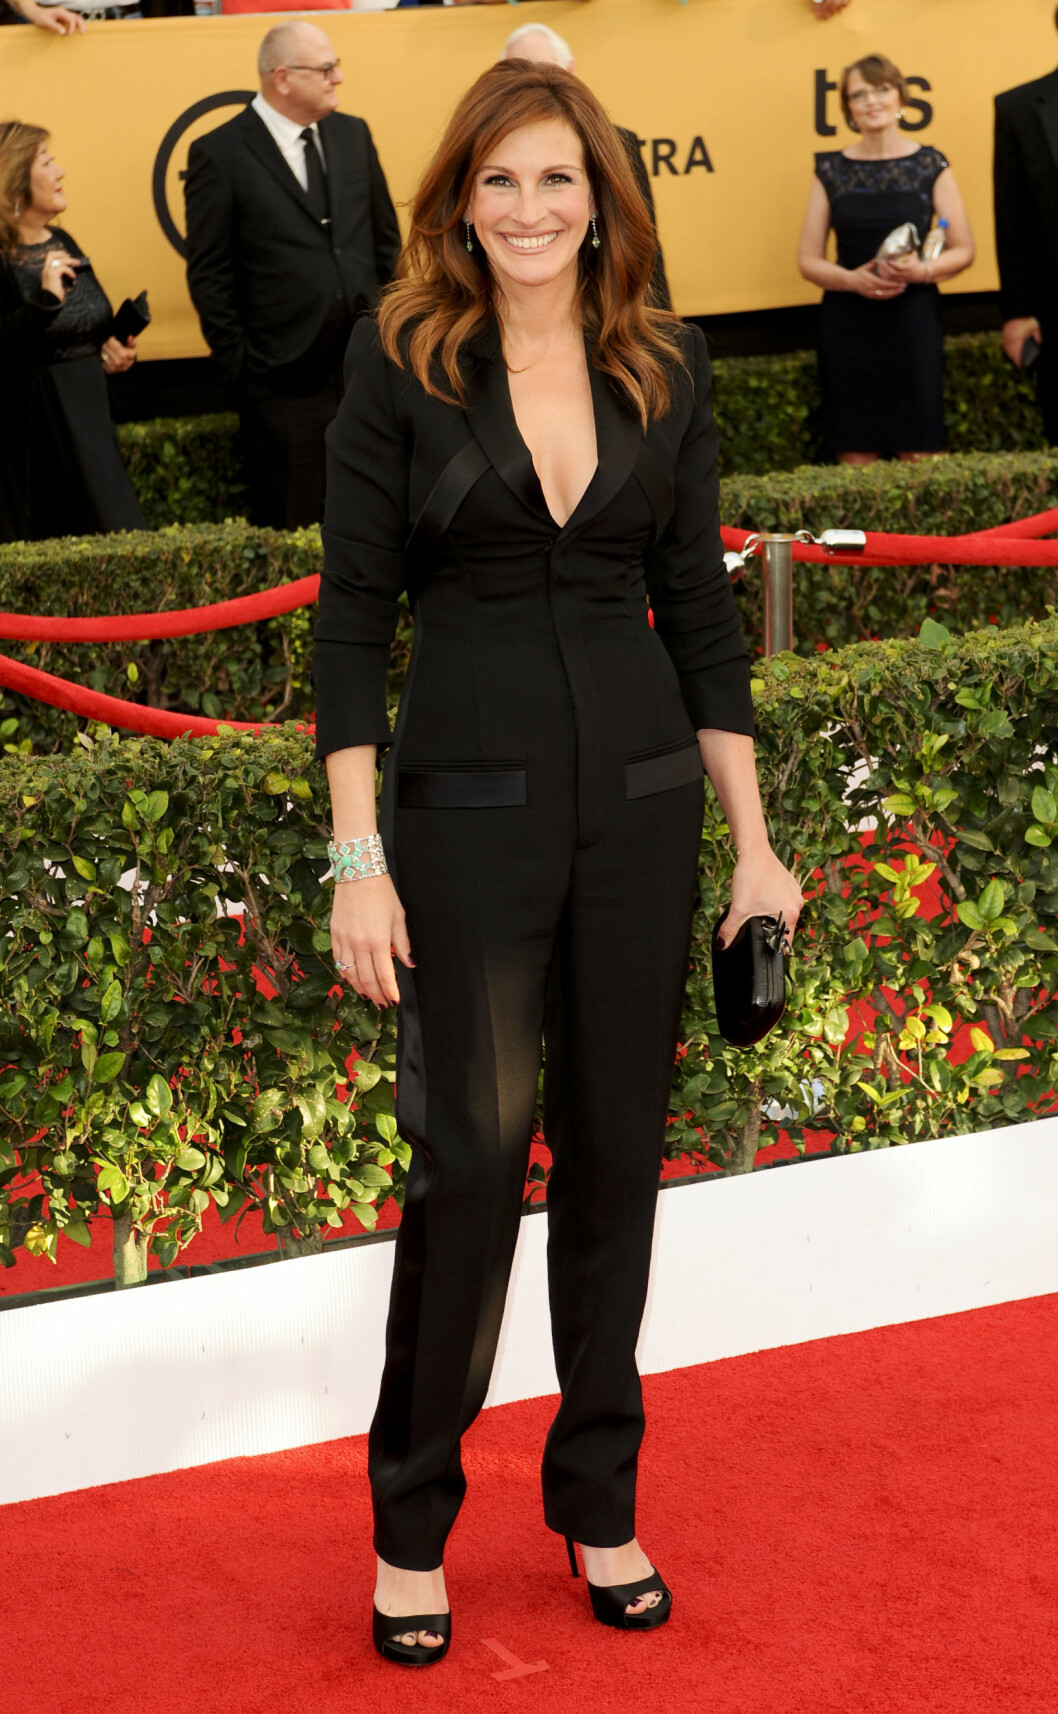 SVART: Julia Roberts valgte å kjøre på med svart og lot smykkene stå for fargene.  ***21st Annual Screen Actors Guild Awards held at the Shrine Auditorium in Los Angeles on January 25th, 2015***  Foto: All Over Press